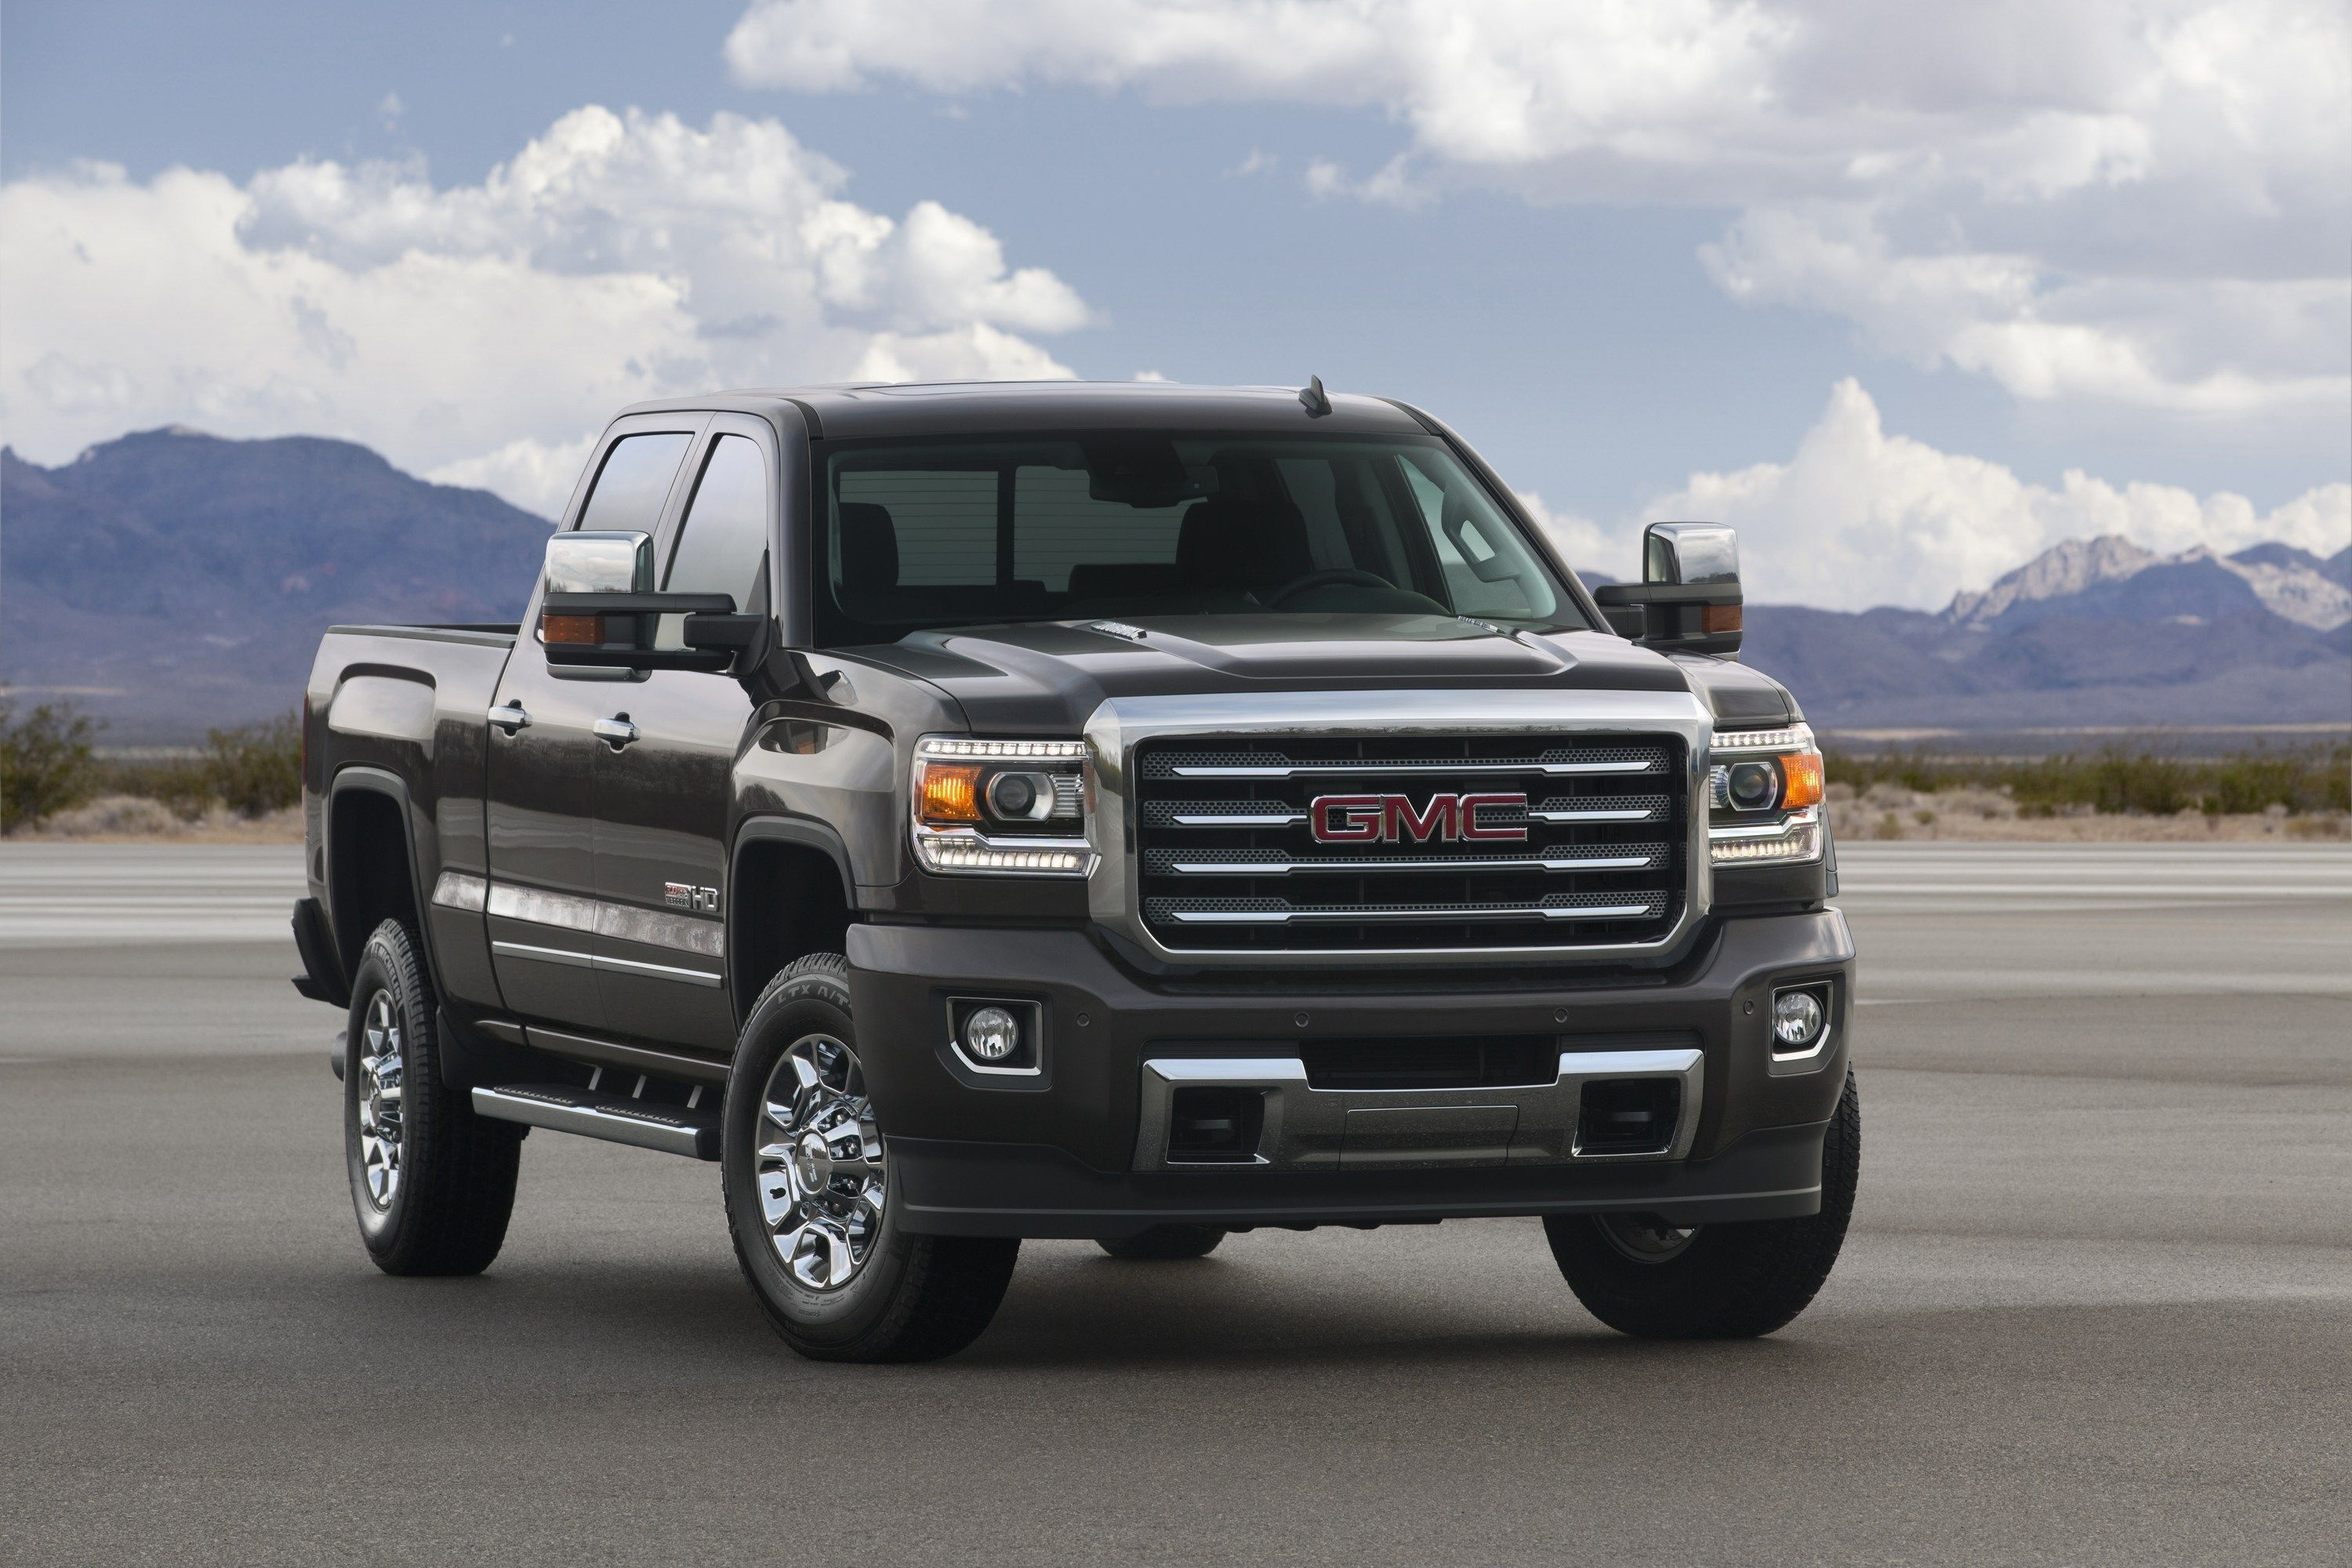 Will The 2020 Gmc Sierra Denali Have A Removable Top With Images Gmc Trucks Pickup Trucks